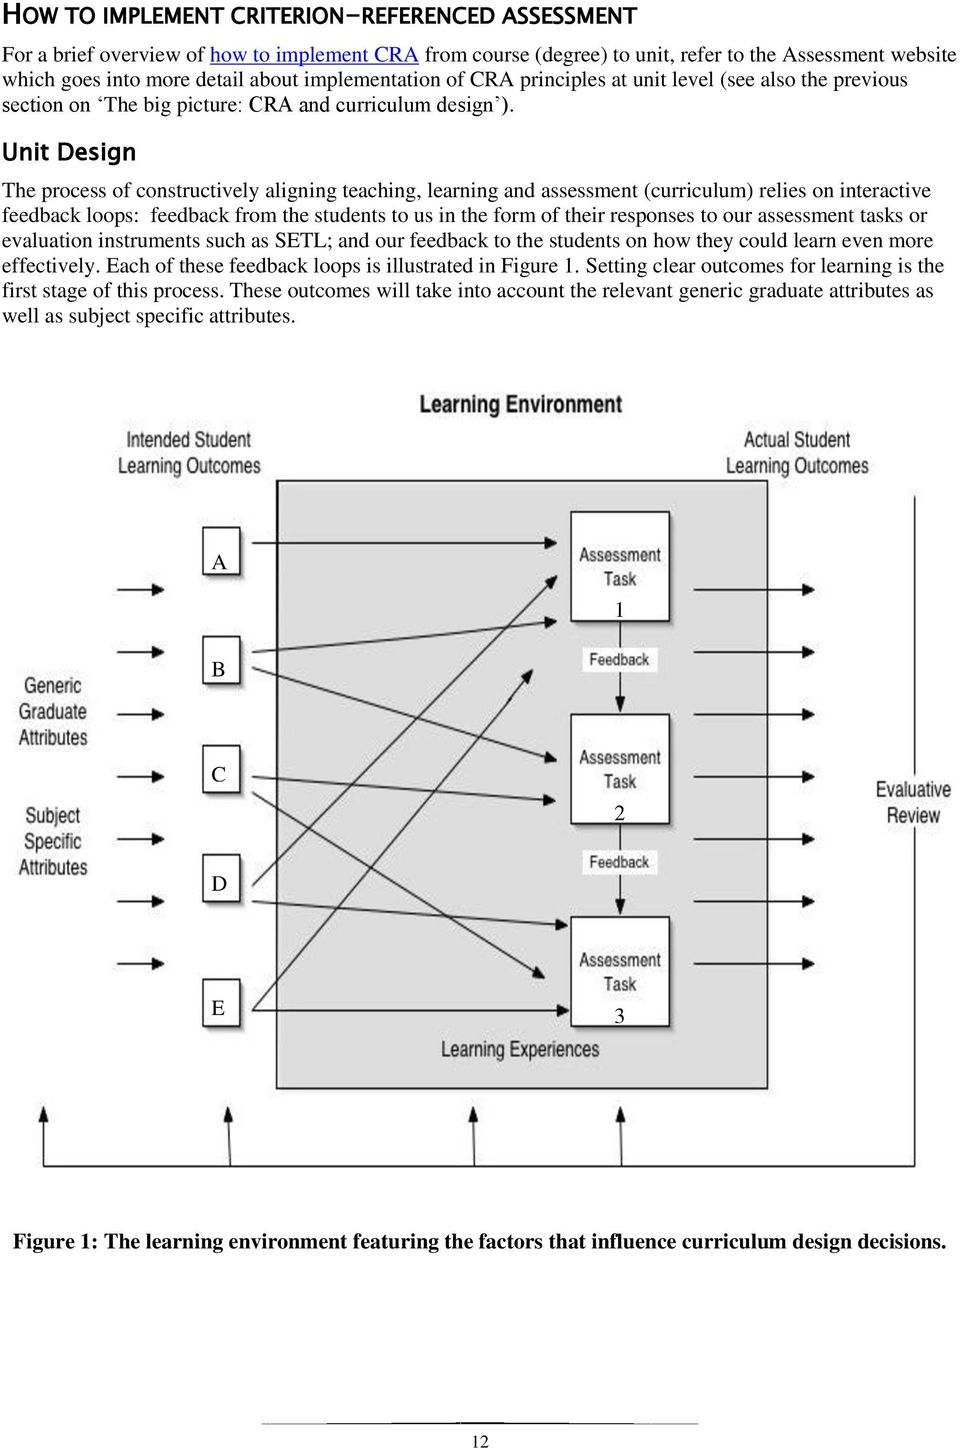 Unit Design The process of constructively aligning teaching, learning and assessment (curriculum) relies on interactive feedback loops: feedback from the students to us in the form of their responses